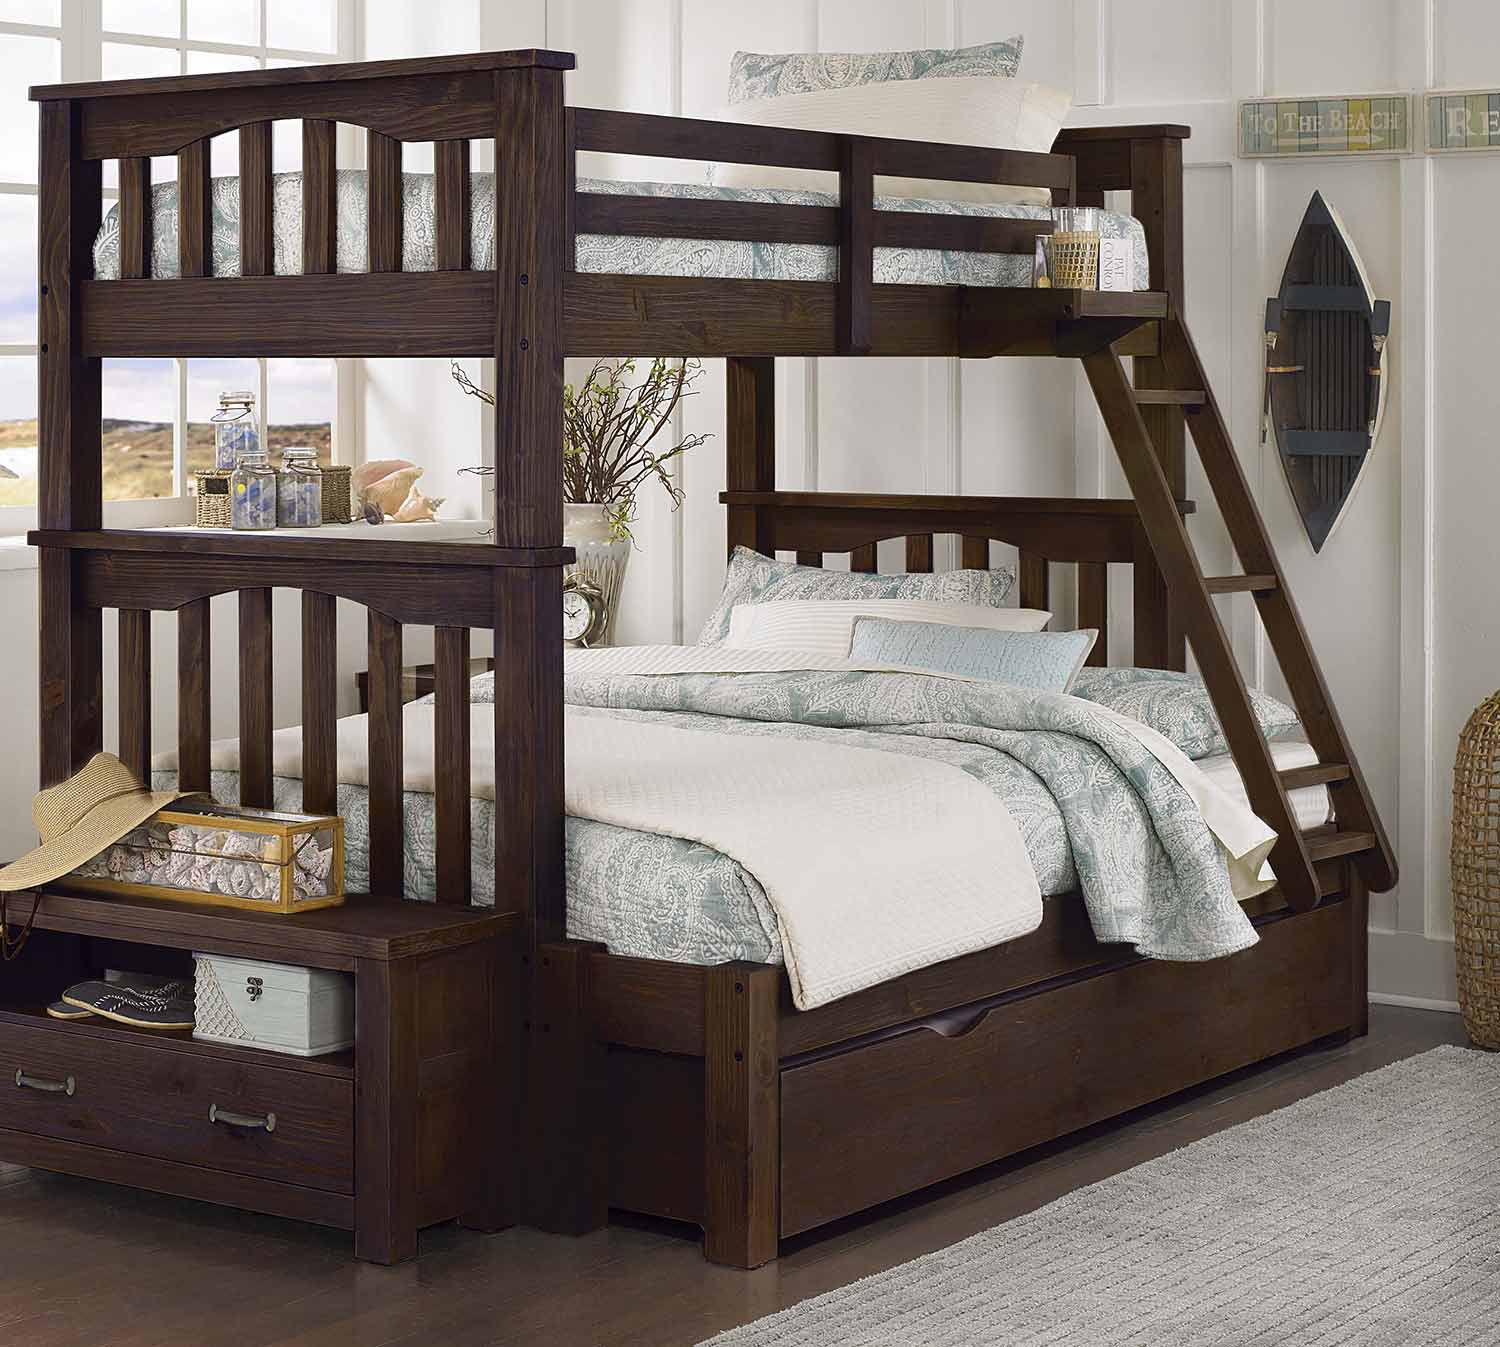 NE Kids Highlands Harper Twin Over Full Bunk With Trundle - Espresso